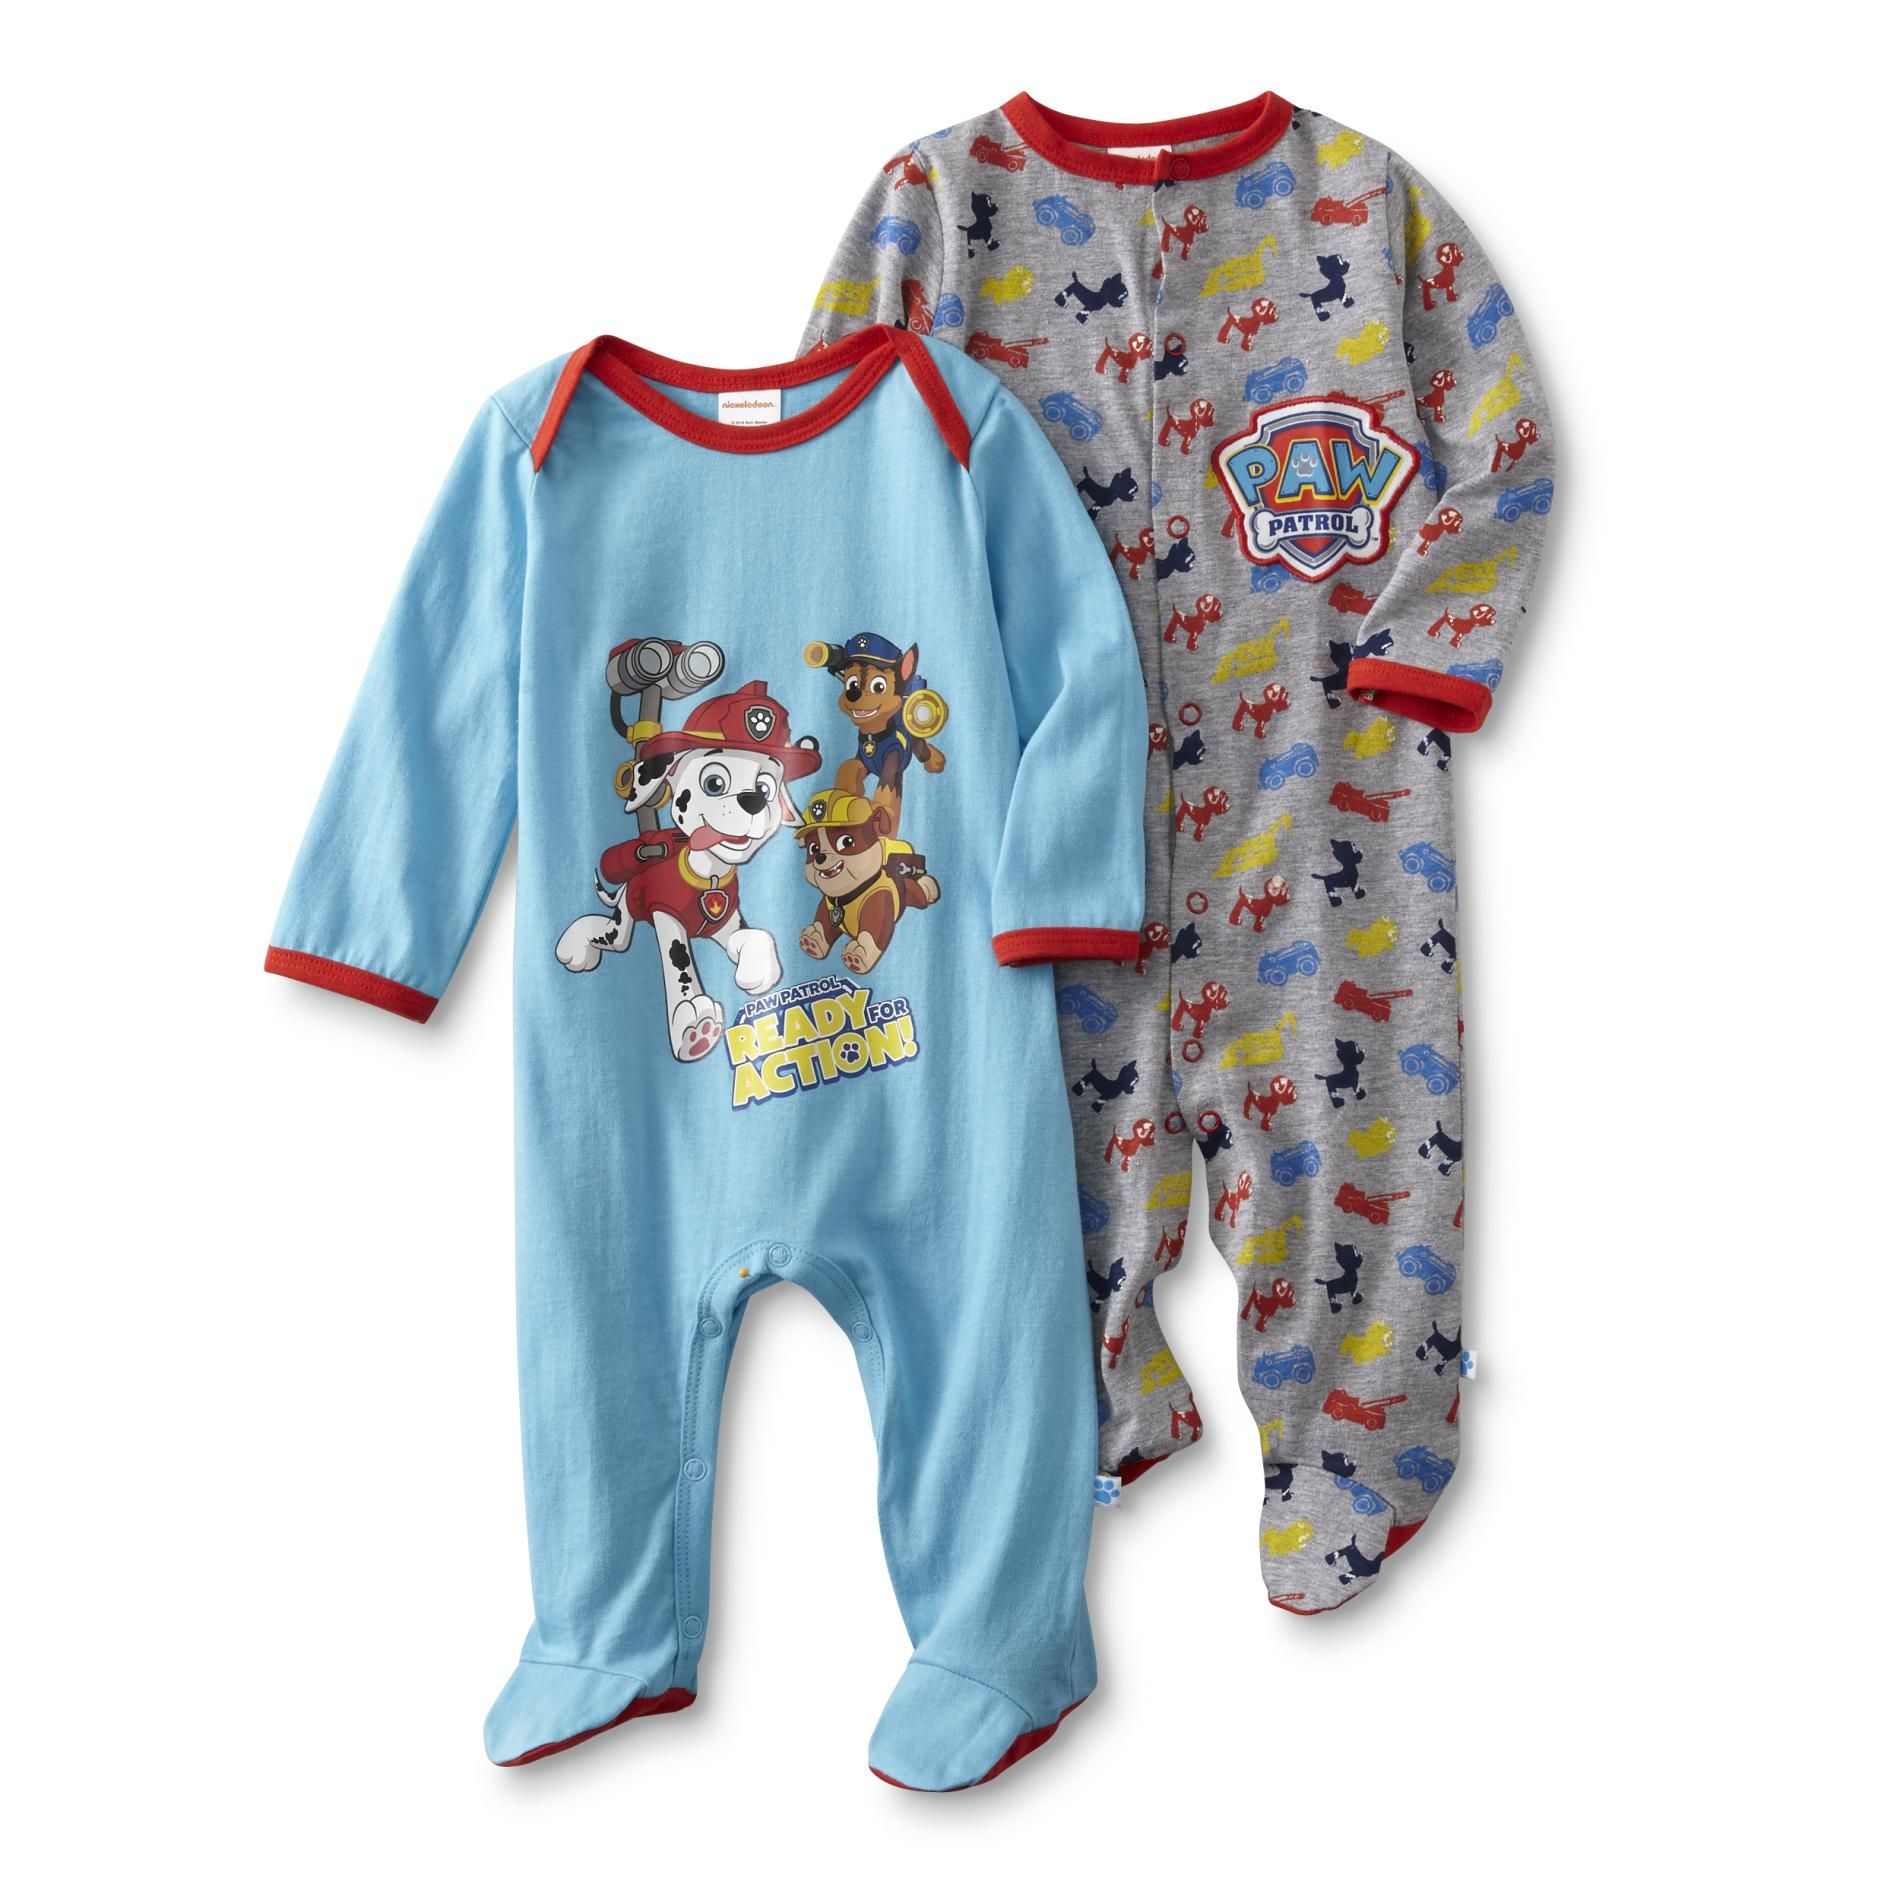 27edc95e5 Nickelodeon PAW Patrol Infant Boy s 2-Pack Sleeper Pajamas